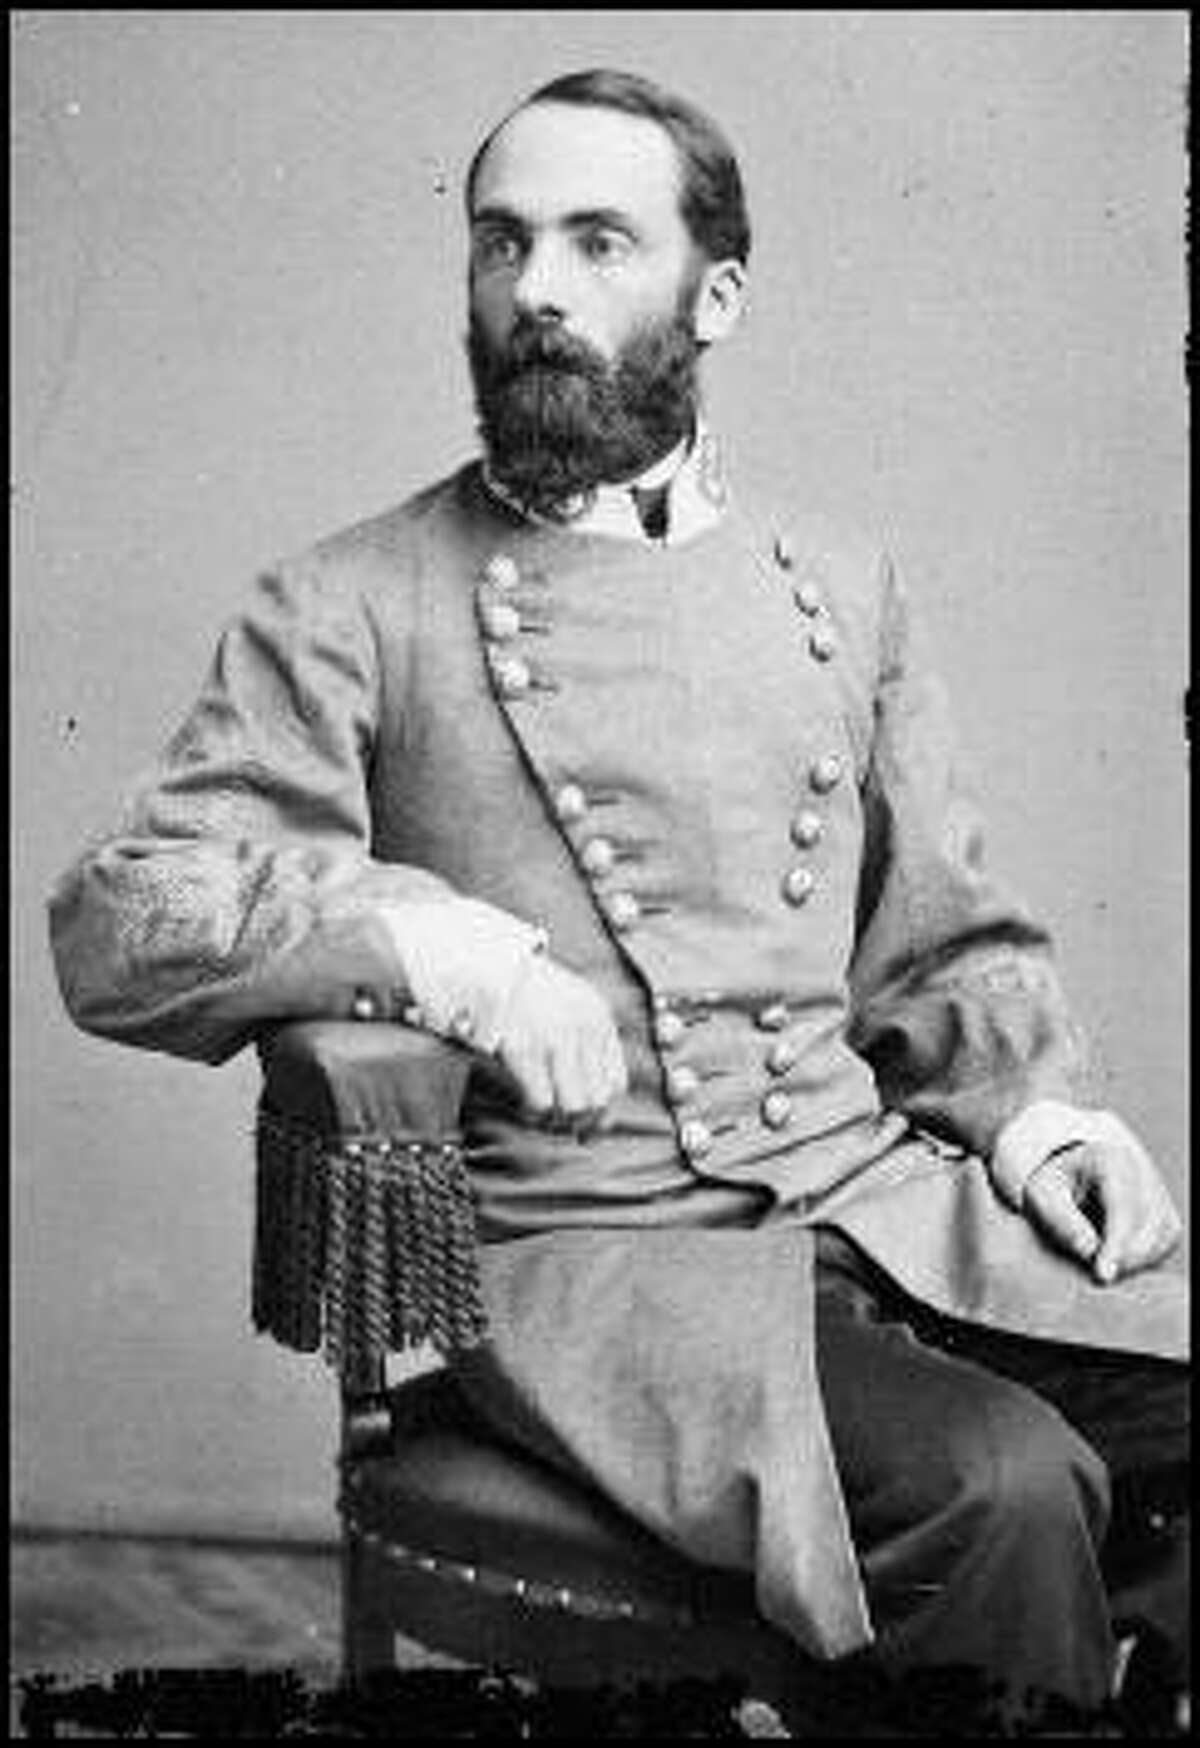 Joseph Wheeler in the uniform of an officer in the Confederate Army.